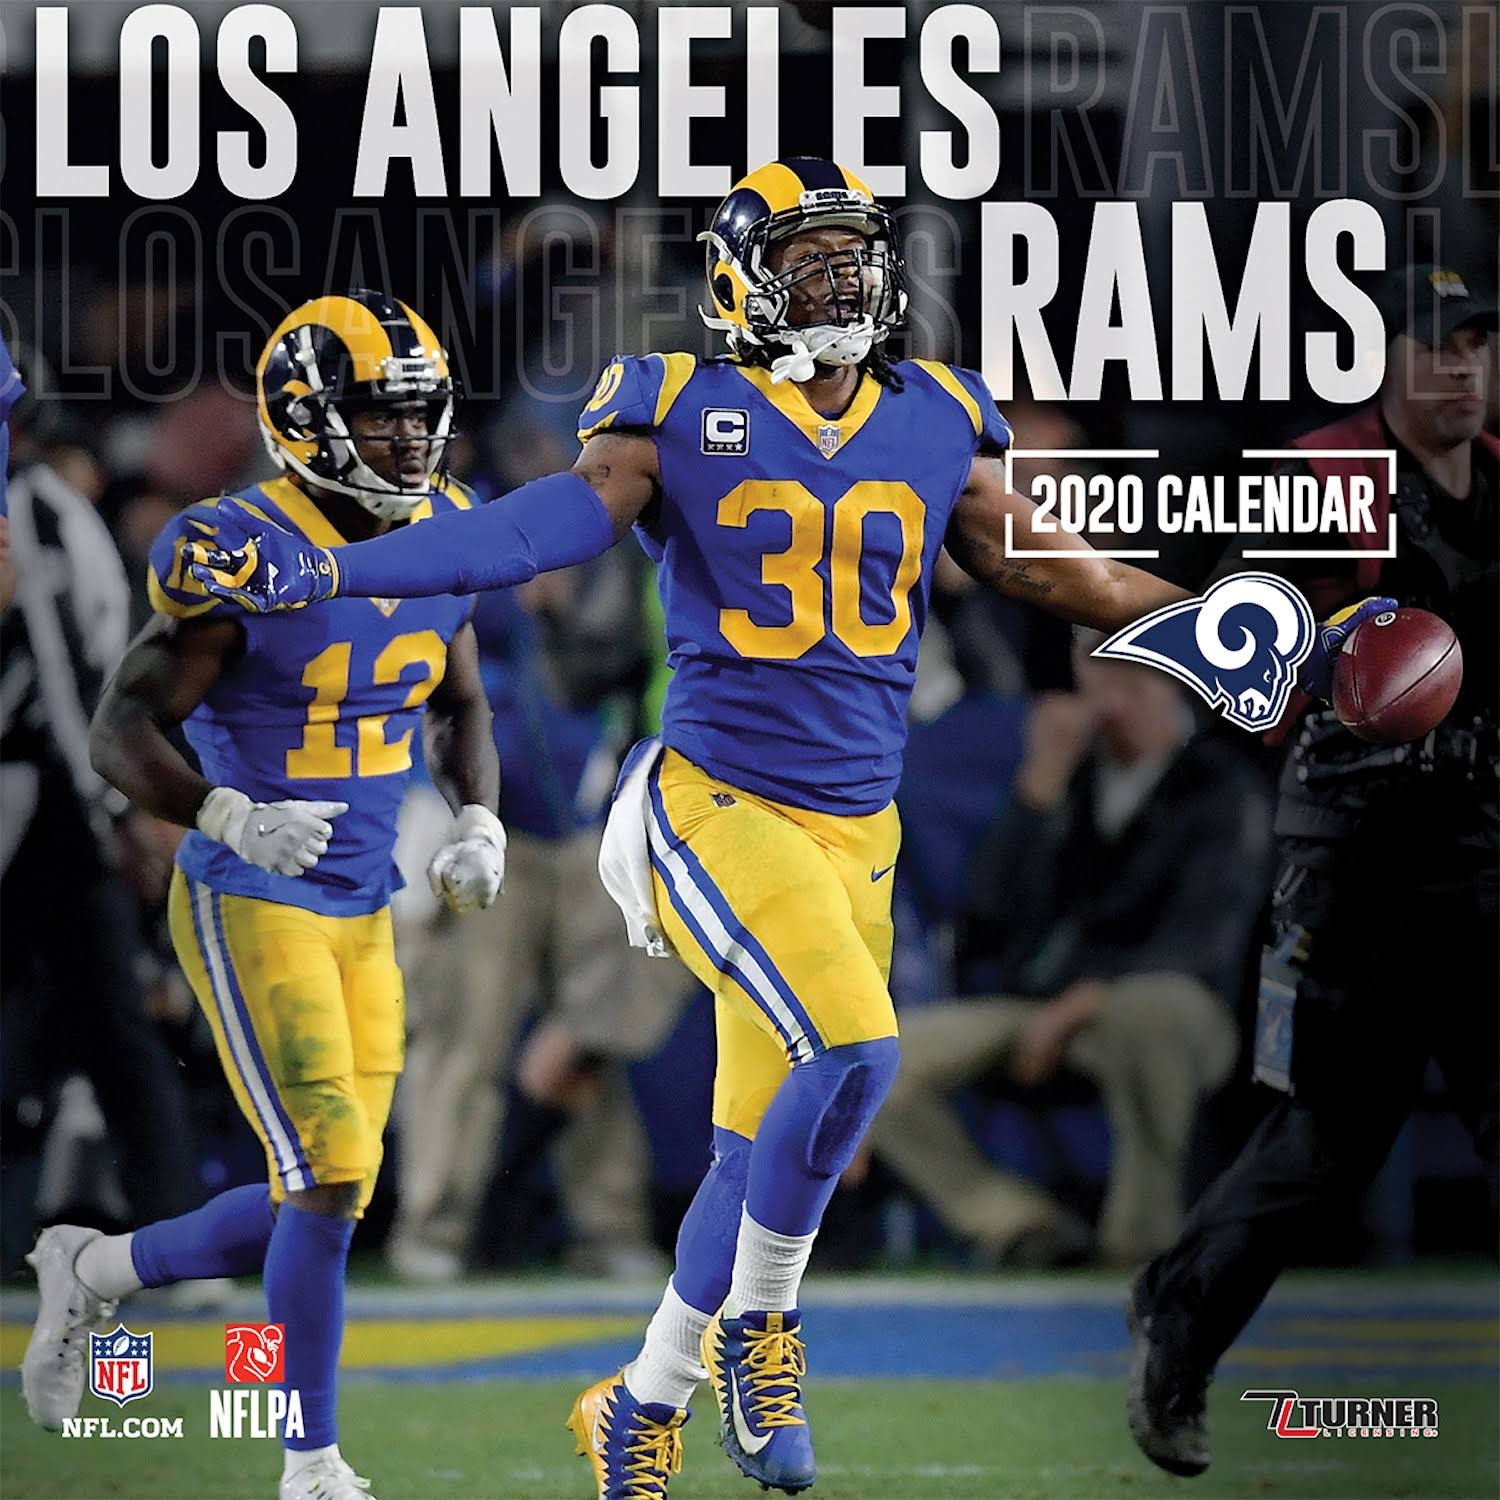 Los Angeles Rams 2020 Wall Calendar